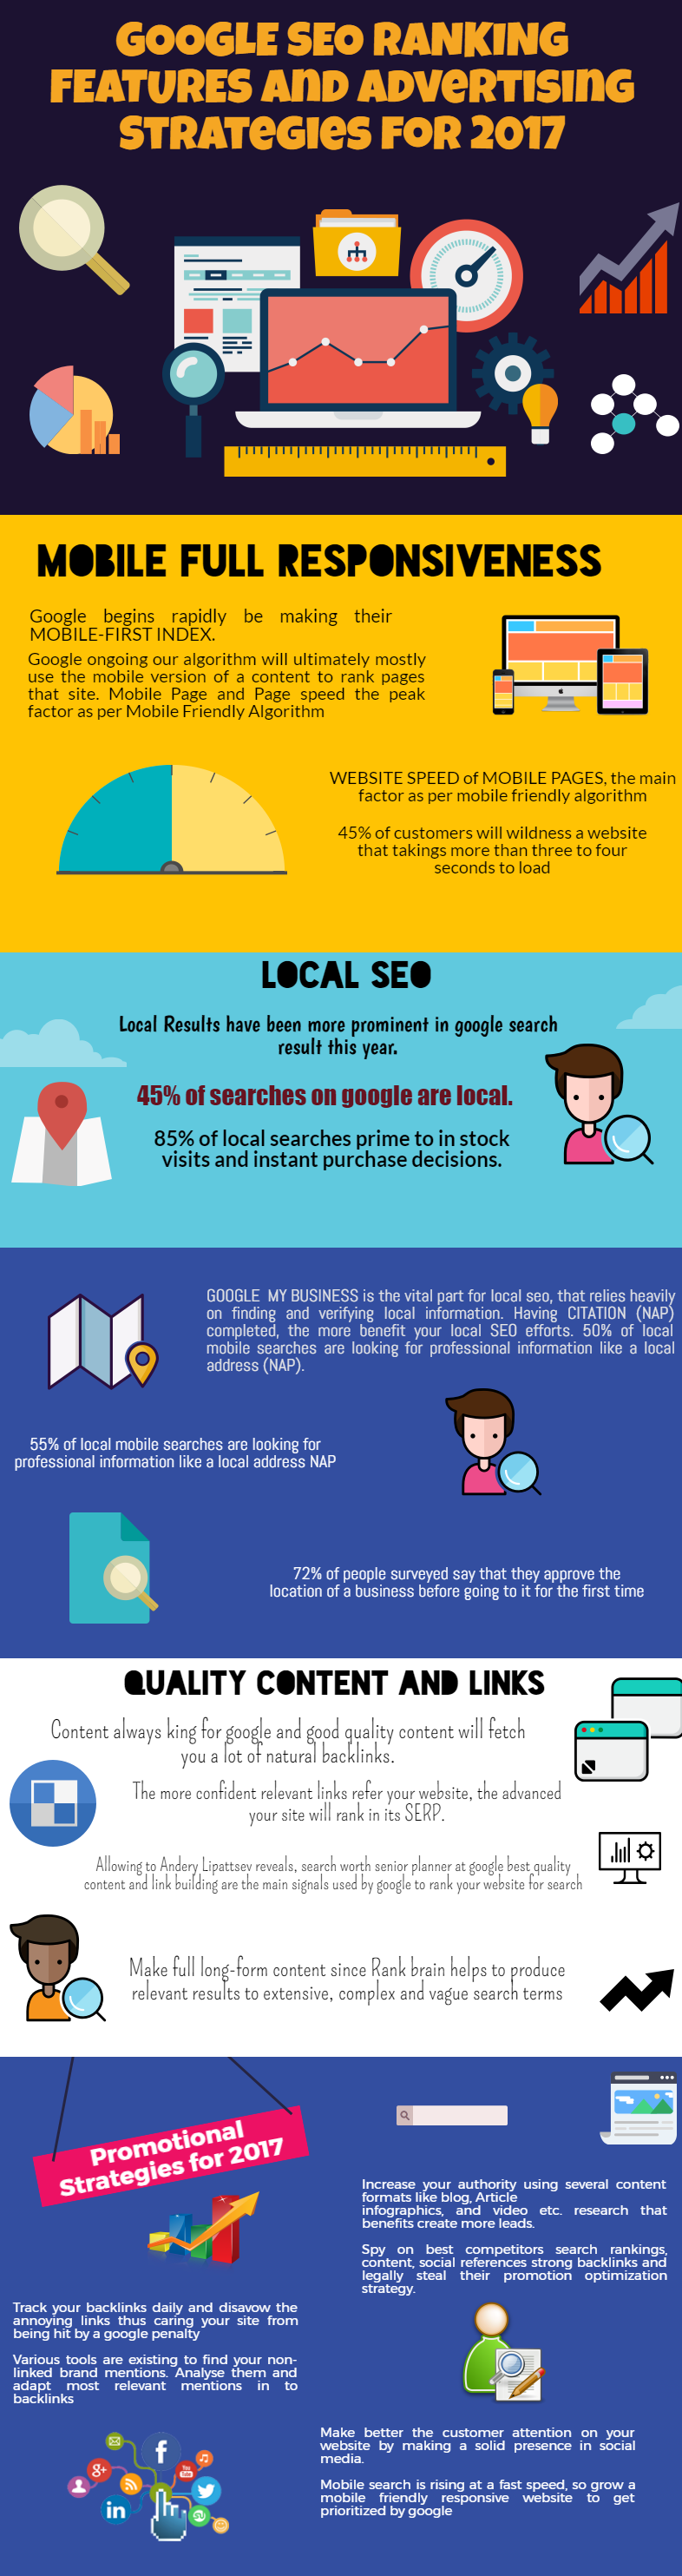 GOOGLE SEO RANKING FEATURES and Advertising Strategies for 2017